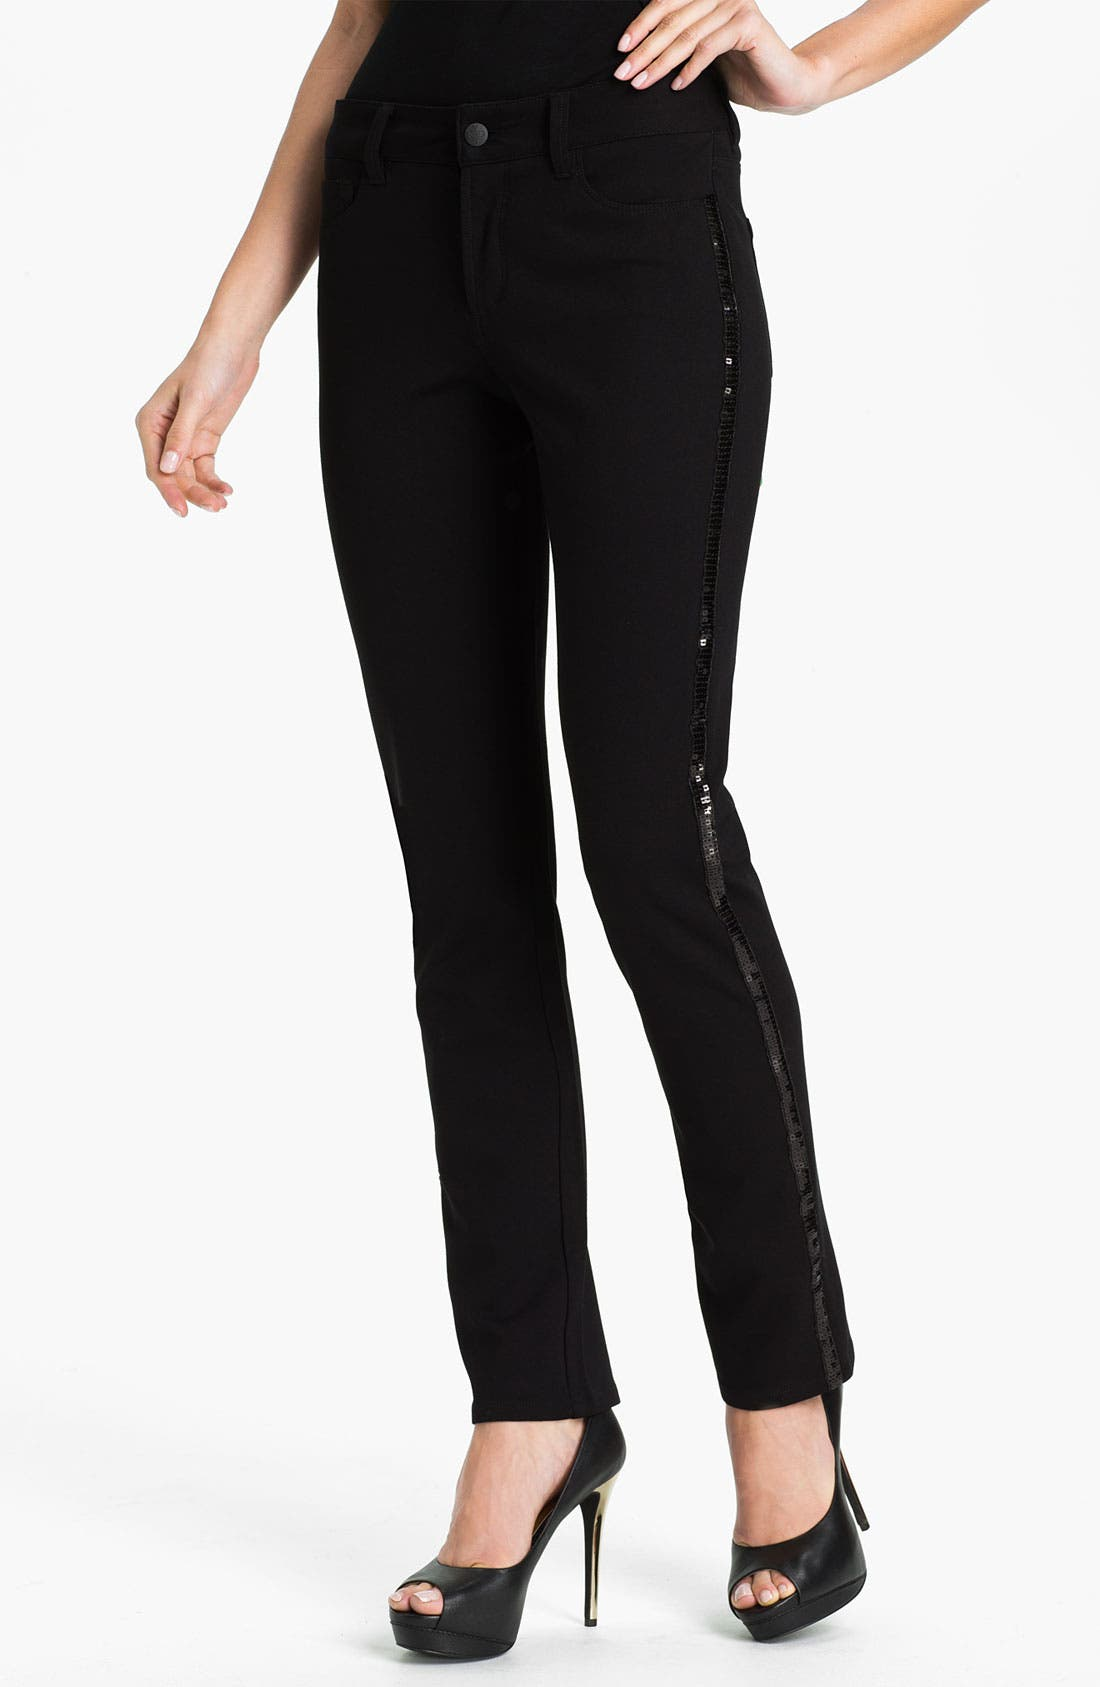 Alternate Image 1 Selected - NYDJ 'Sheri - Tuxedo' Skinny Twill Jeans